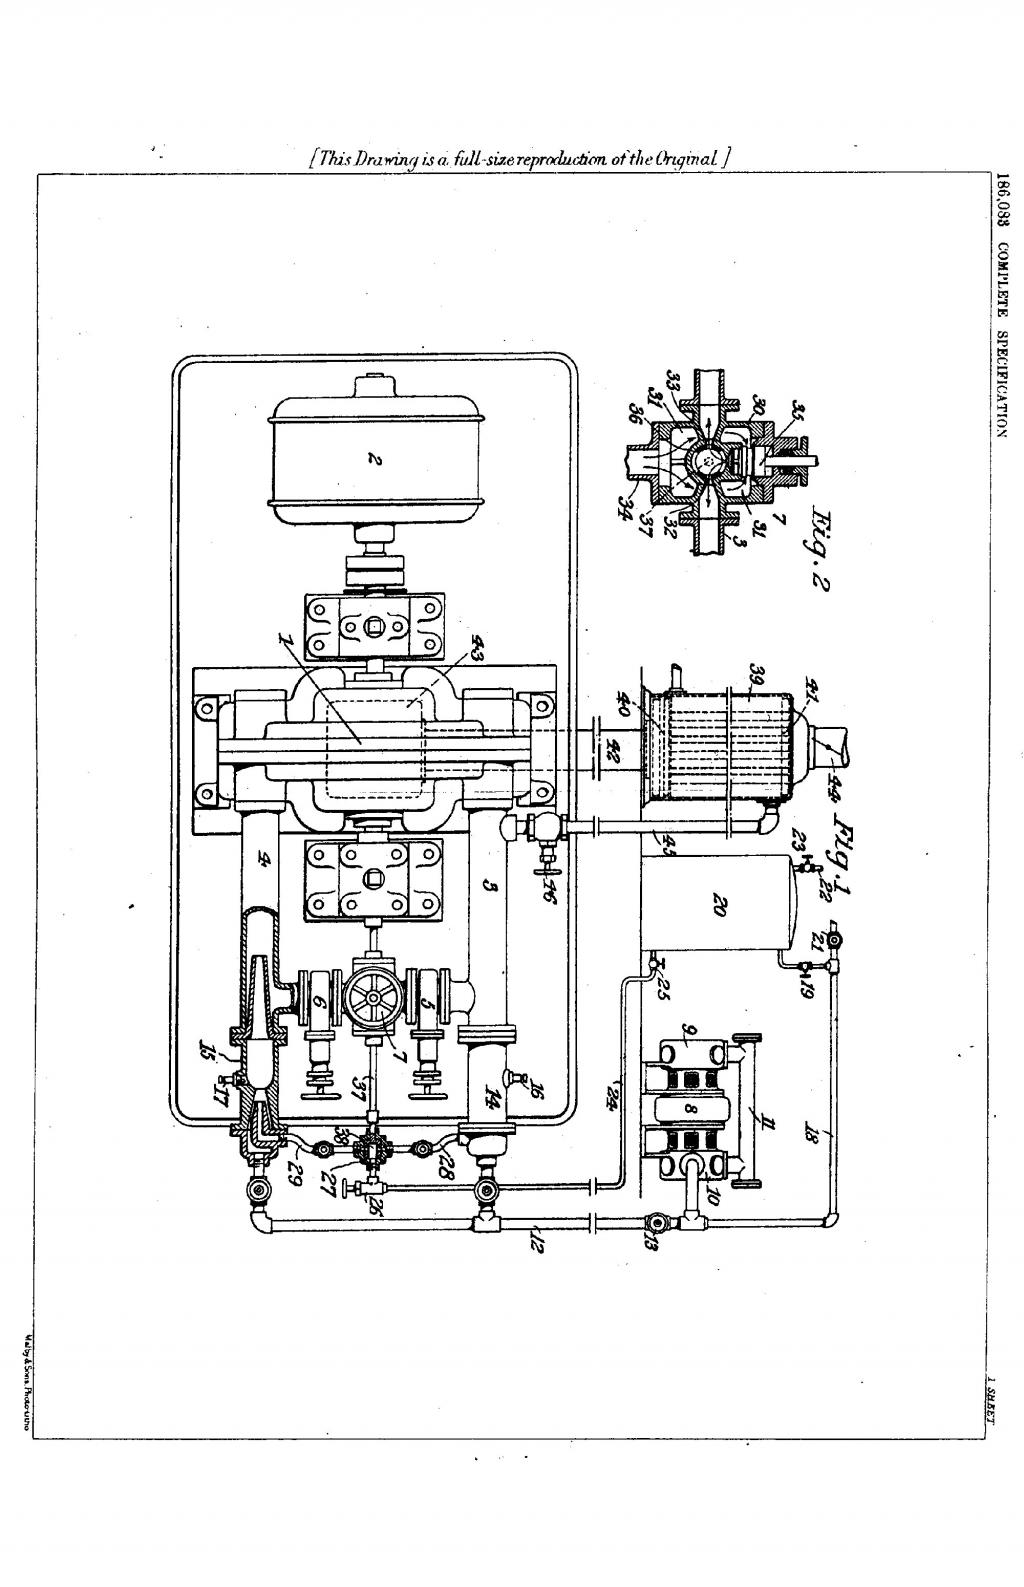 Nikola Tesla British Patent 186,083 - Improved Method of and Apparatus for the Economic Transformation of the Energy of Steam by Turbines - Image 1